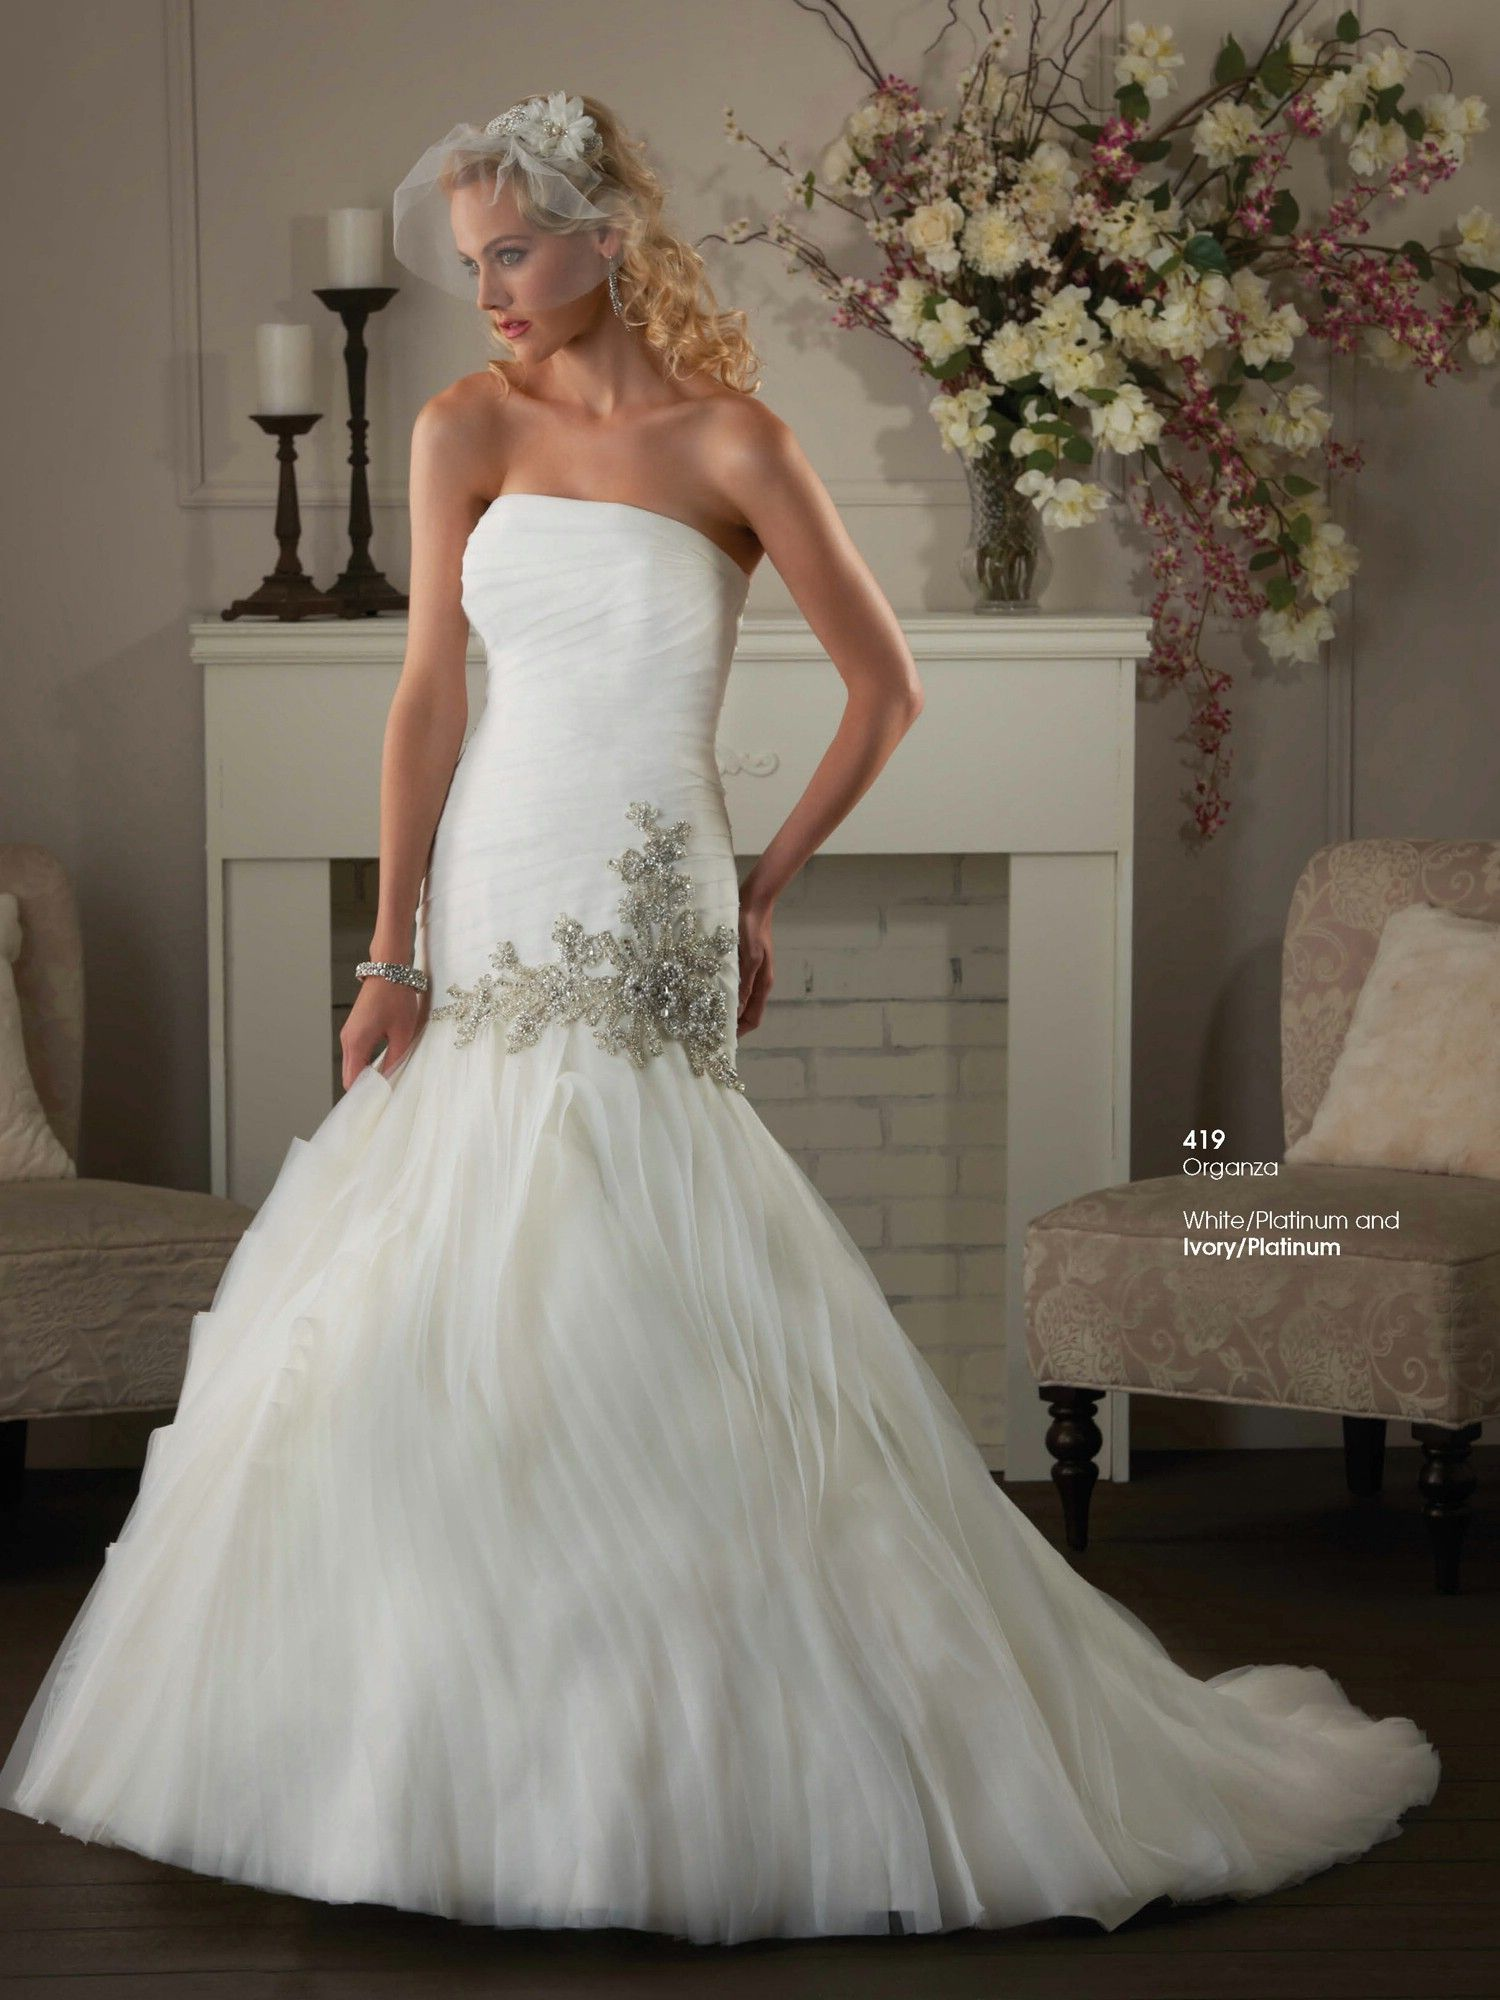 Bonny wedding dresses style angieus big day pinterest